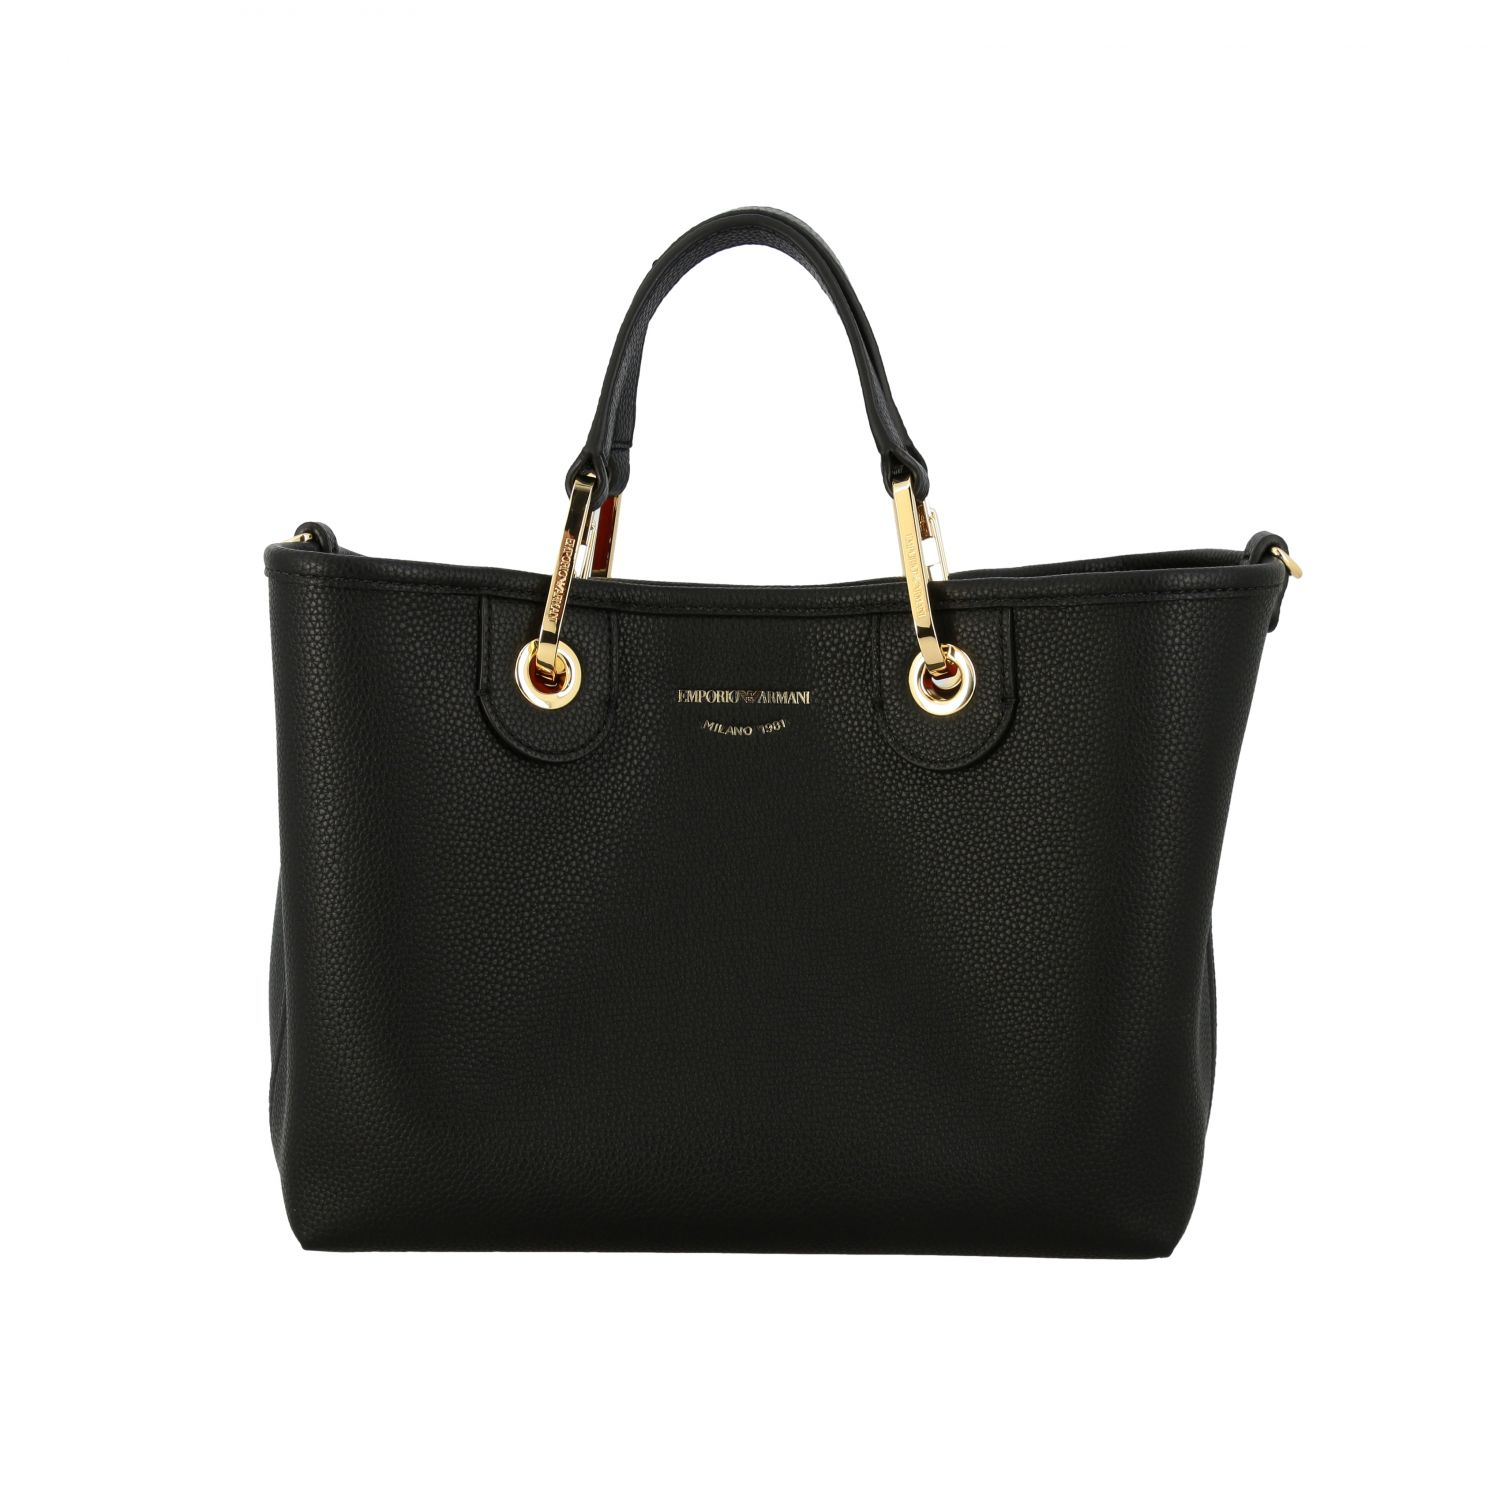 Emporio Armani shopping bag in synthetic leather black 1